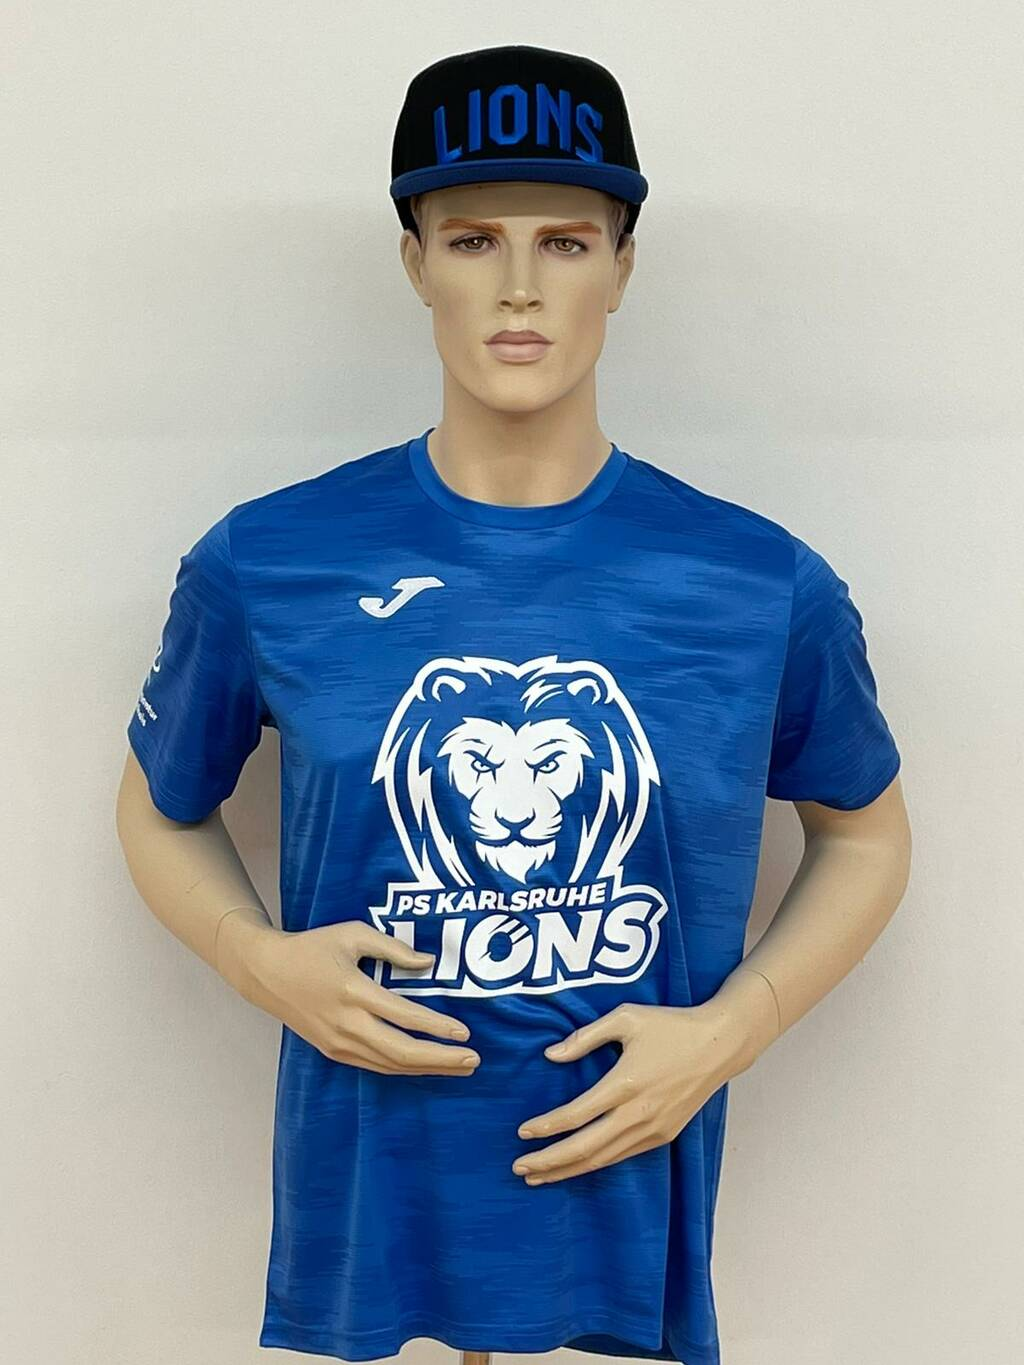 WARM UP SHIRT LIONS - PS Karlsruhe Lions Fan Shop